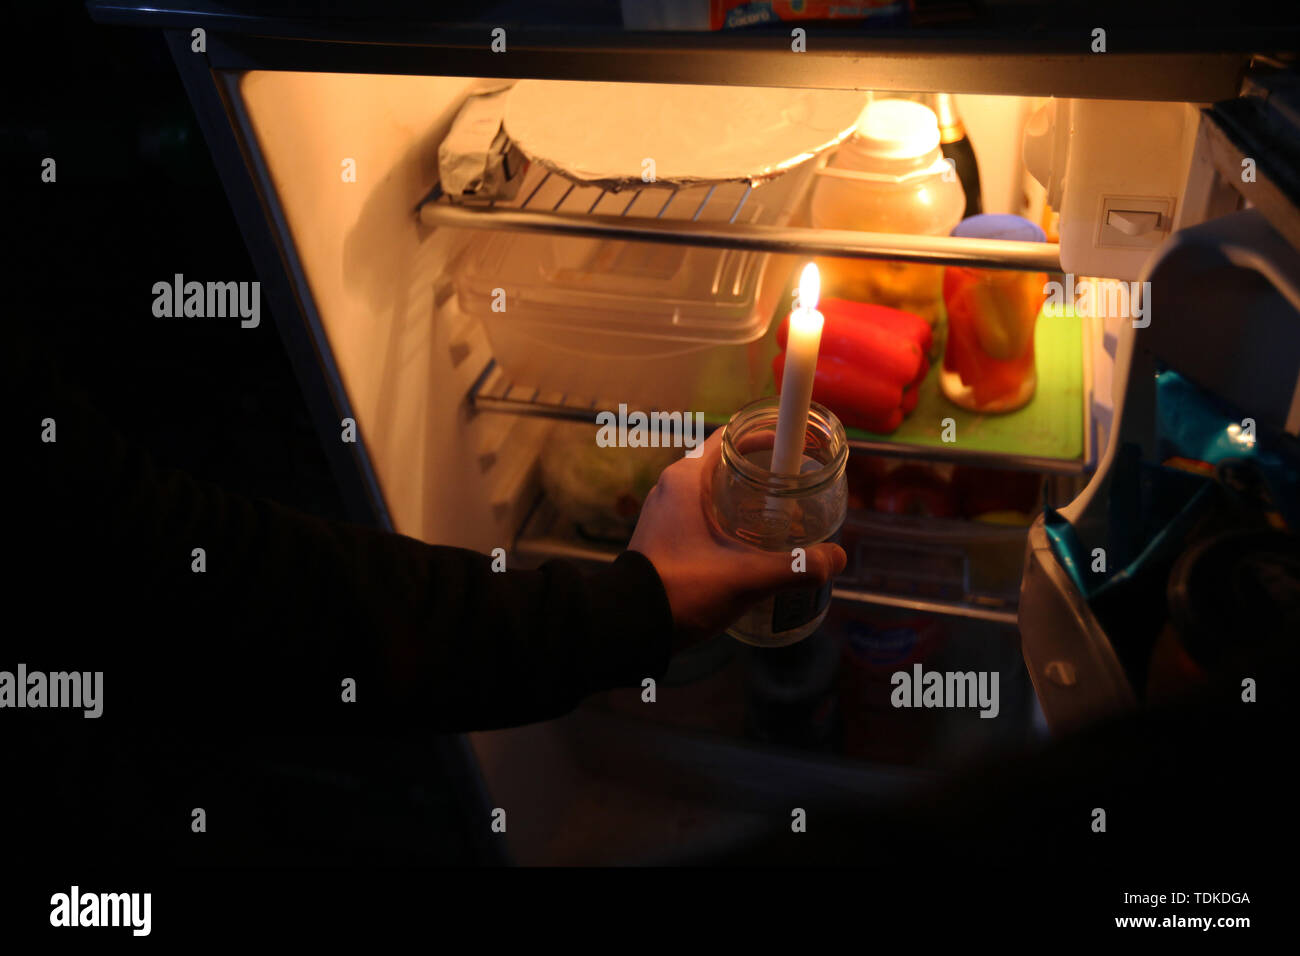 Buenos Aires, Buenos Aires, Argentina. 16th June, 2019. A blackout stripped all of mainland Argentina and Uruguay of power early Sunday, affecting tens of millions of people in an electrical failure that officials called unprecedented in its scope. Credit: Claudio Santisteban/ZUMA Wire/Alamy Live News Stock Photo